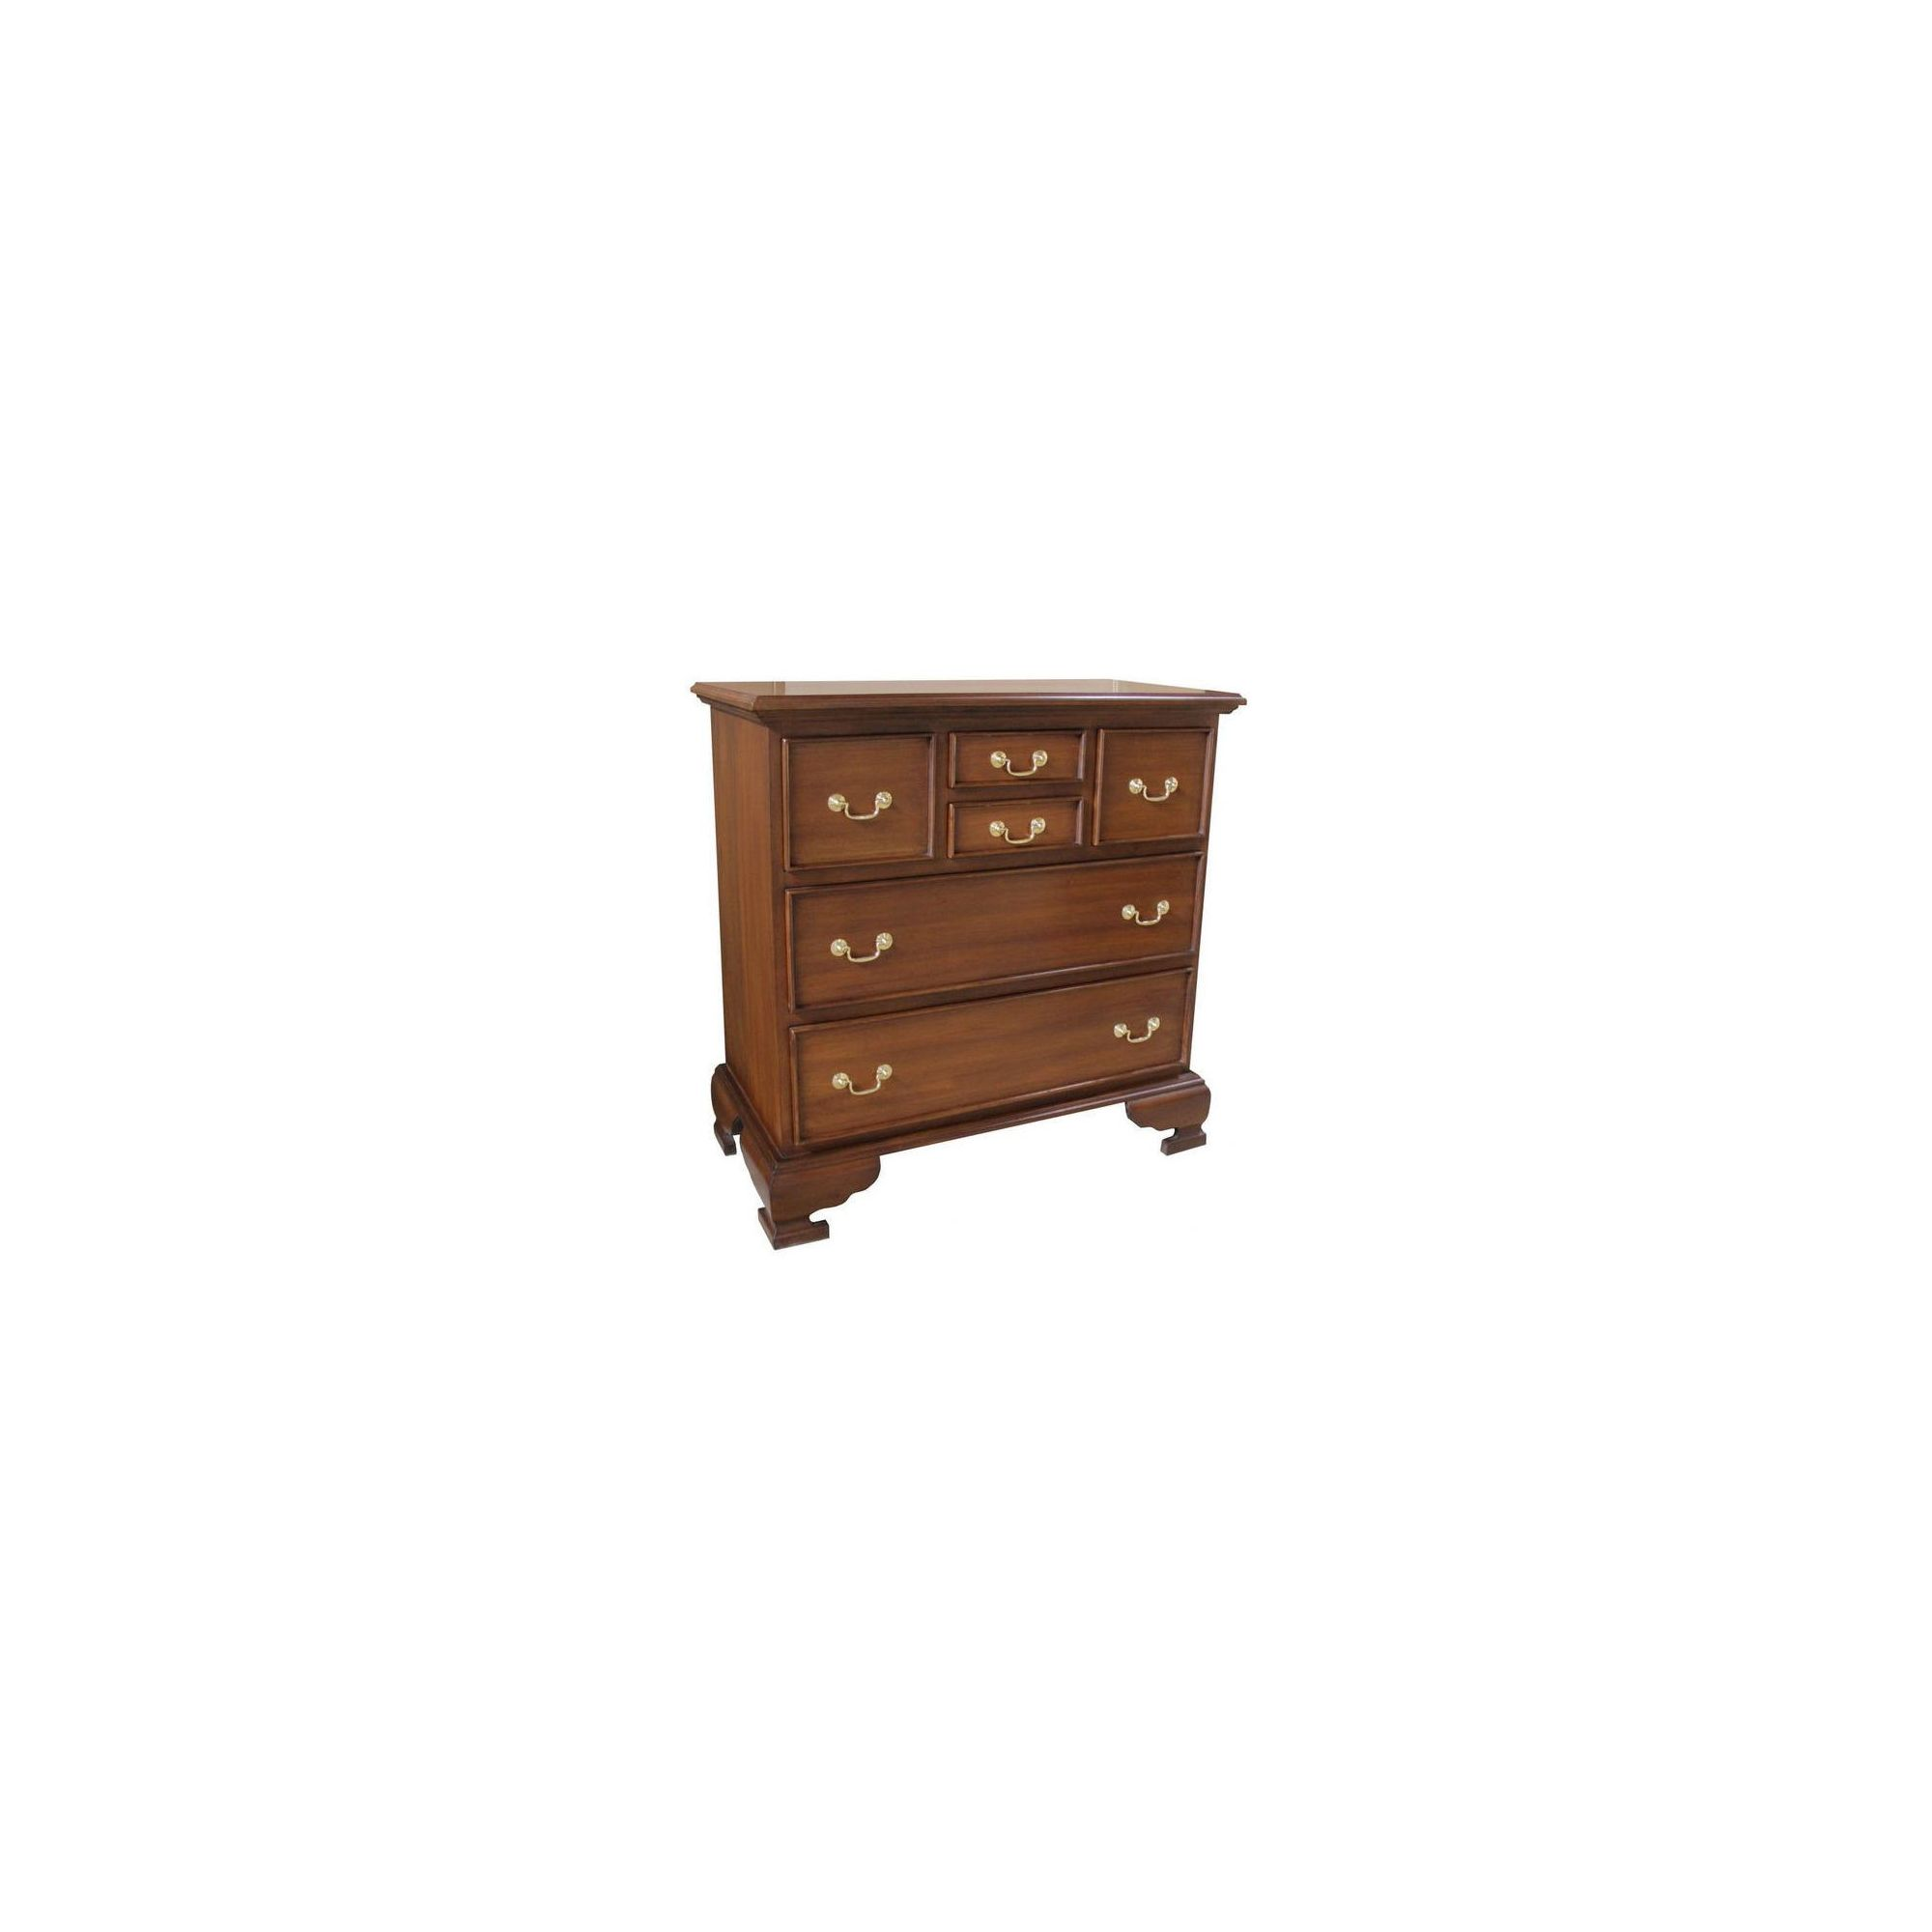 Lock stock and barrel Mahogany 2-2-2 Chest of Drawers in Mahogany - Antique White at Tesco Direct